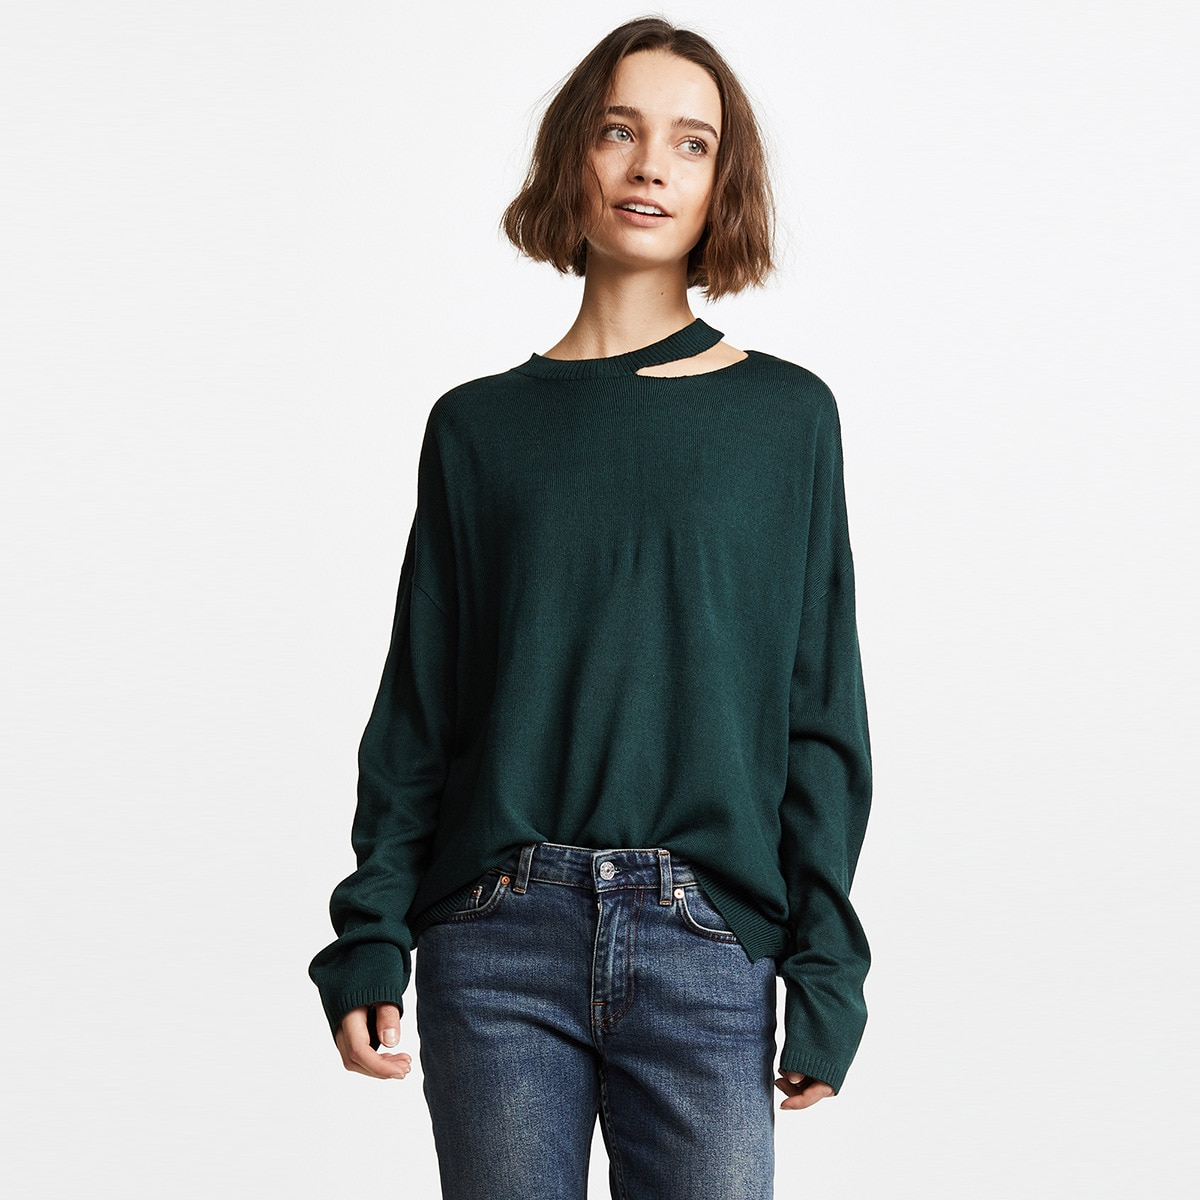 New European And American Fashion Simple Versatile Solid Color Neckline Asymmetric Hollowed Out Sweater